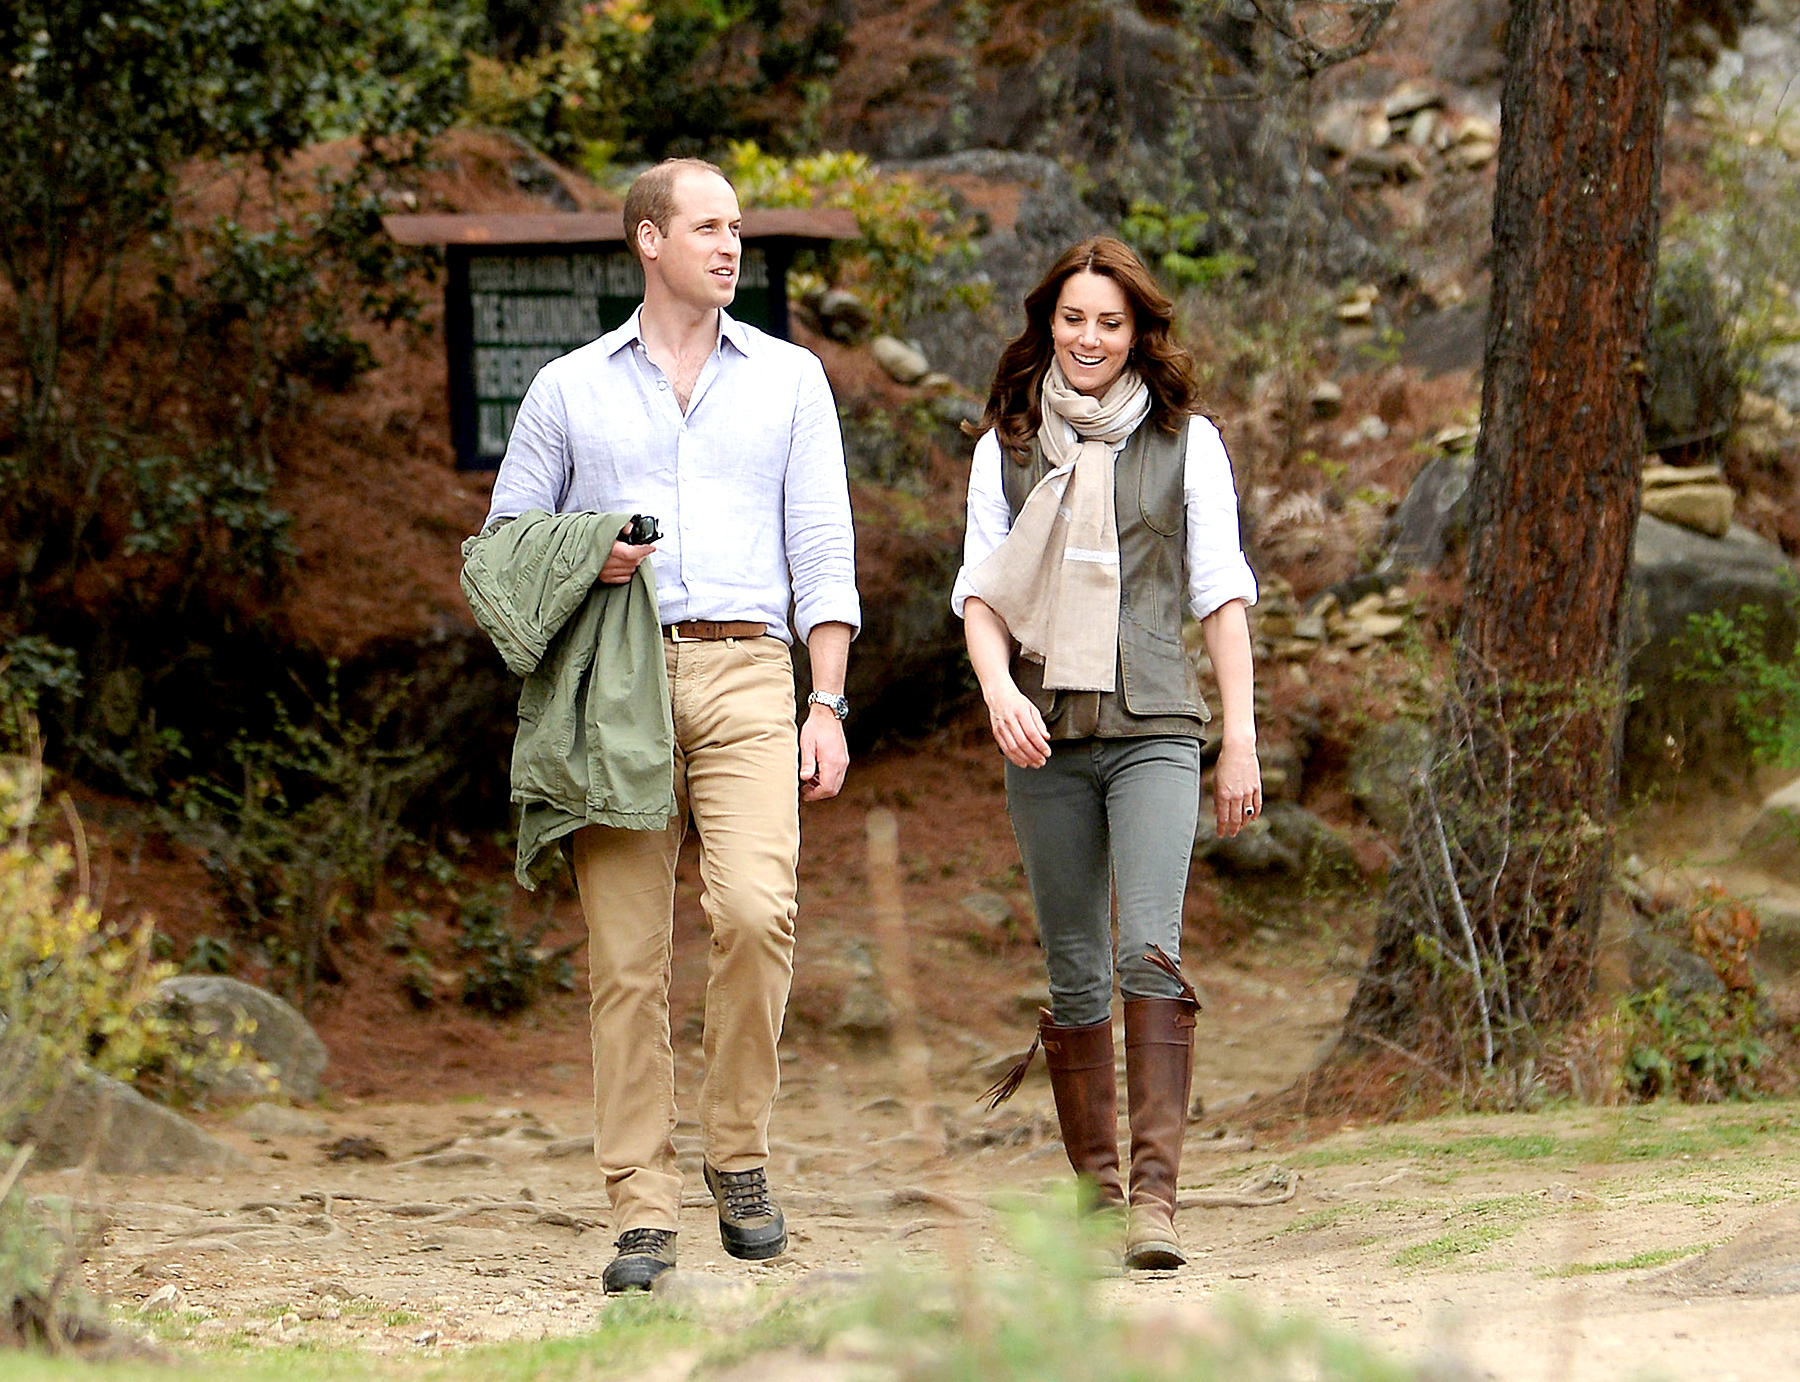 Catherine, Duchess of Cambridge and Prince William, Duke of Cambridge hike to Paro Taktsang, the Tiger's Nest monastery on April 15, 2016 in Paro, Bhutan.